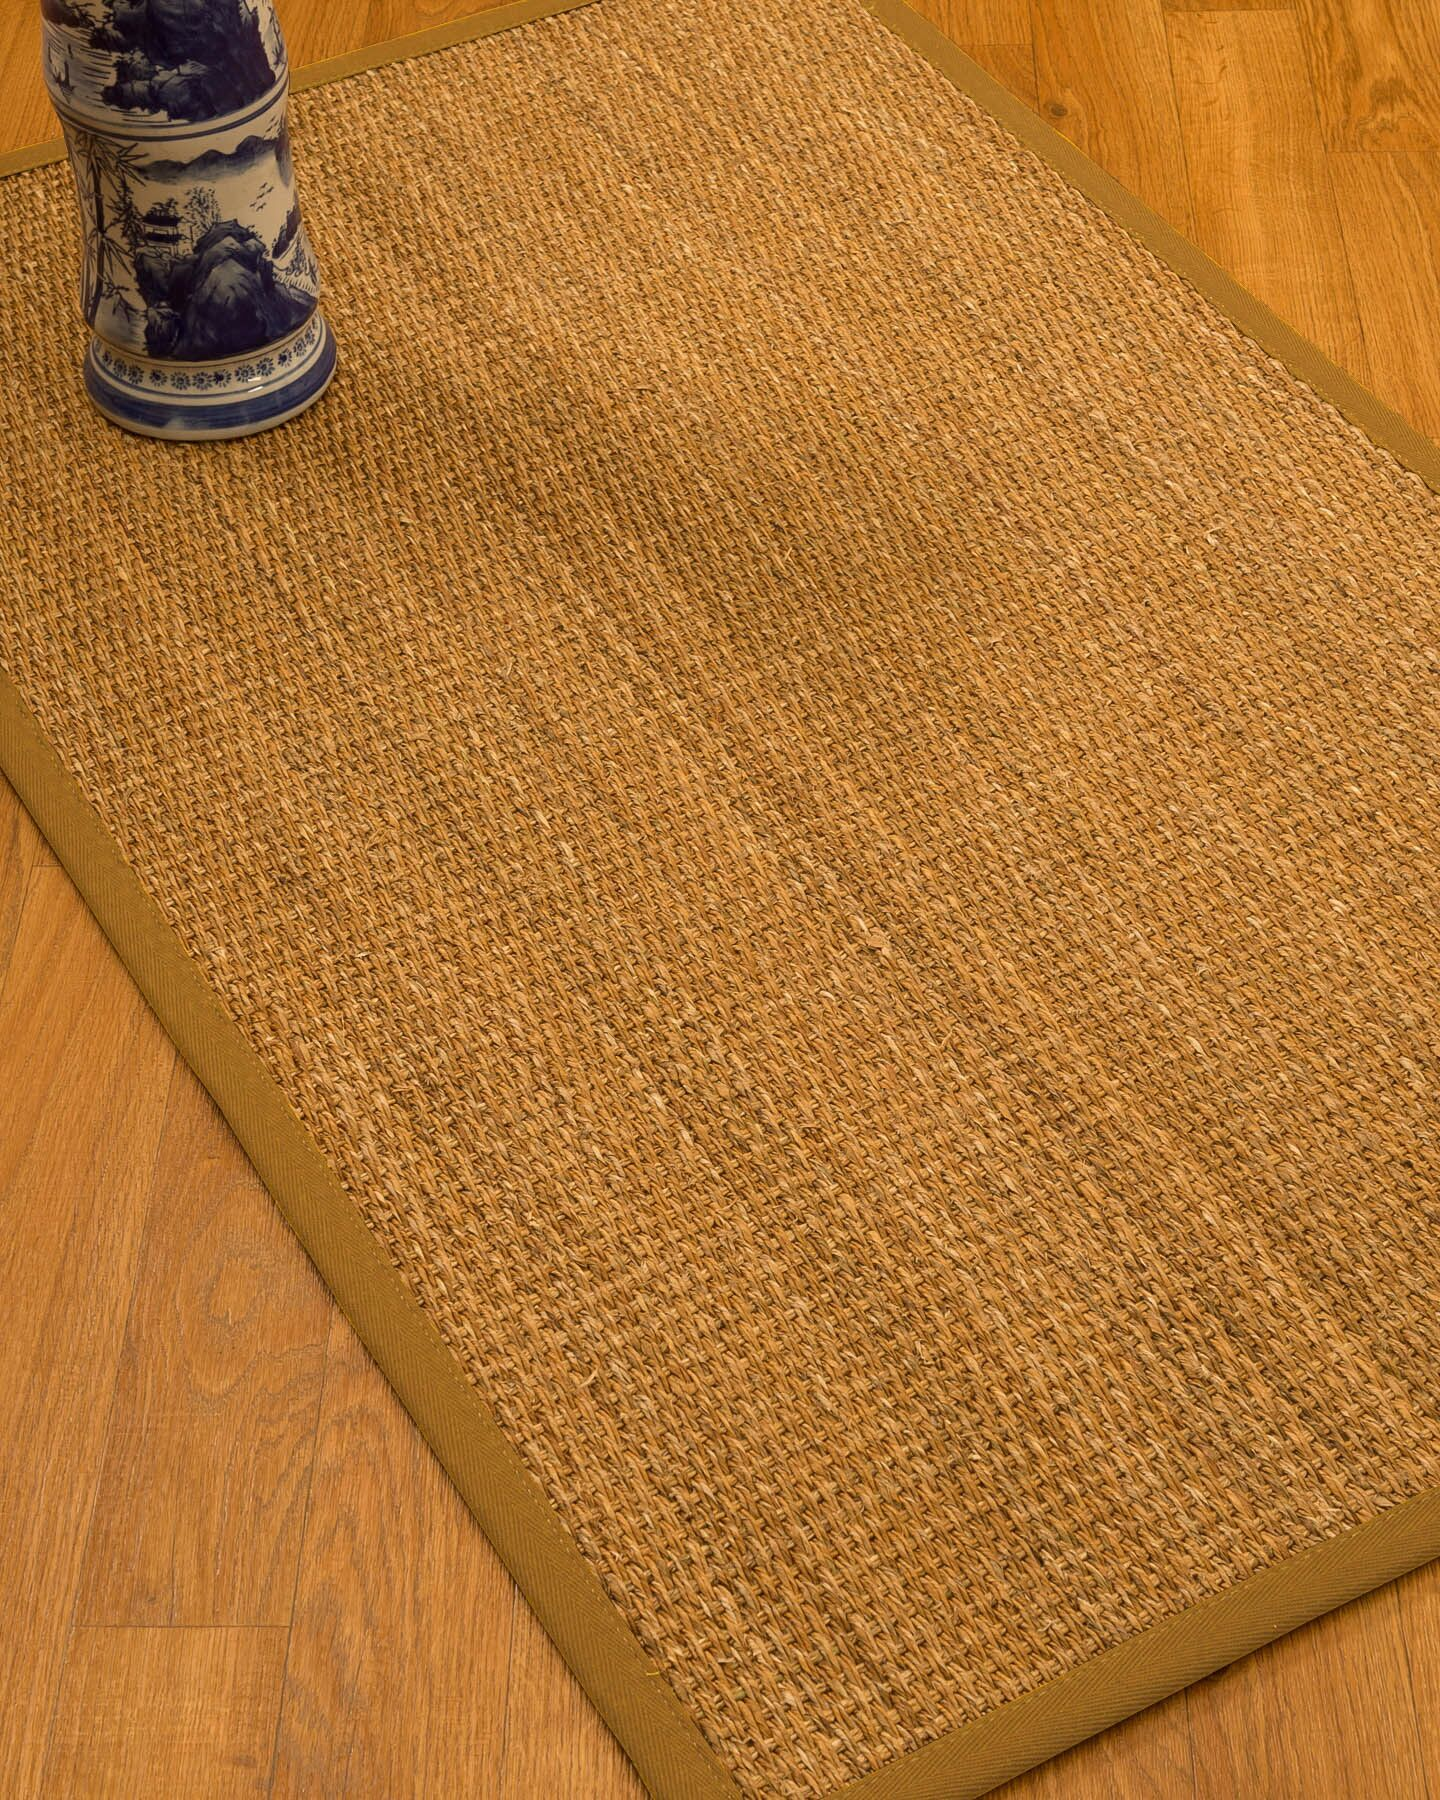 Kimberwood Border Hand-Woven Brown/Sienna Area Rug Rug Size: Rectangle 8' x 10', Rug Pad Included: Yes